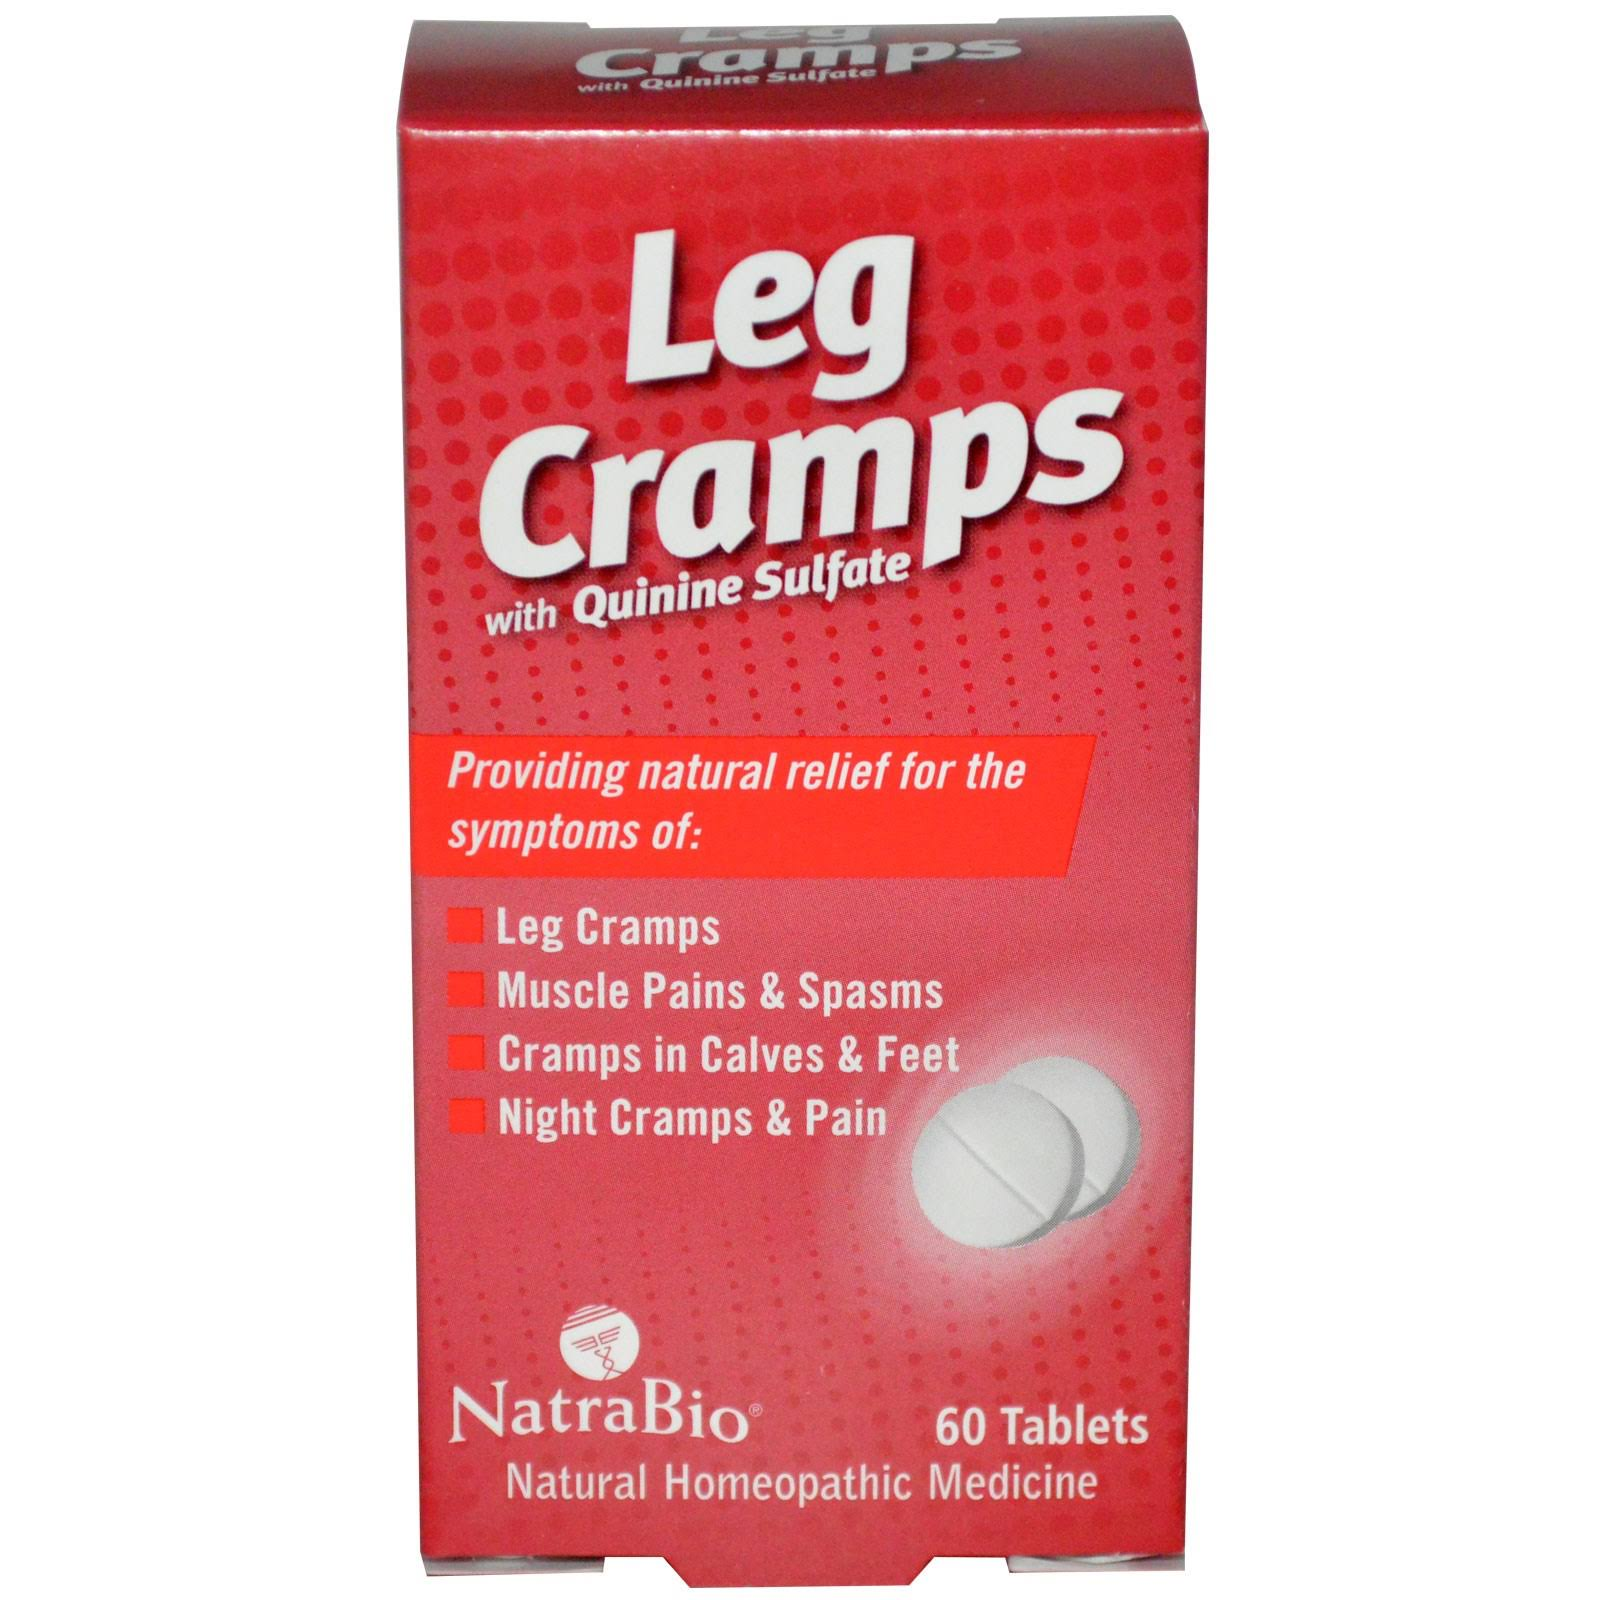 NatraBio Leg Cramps - 60 tablets